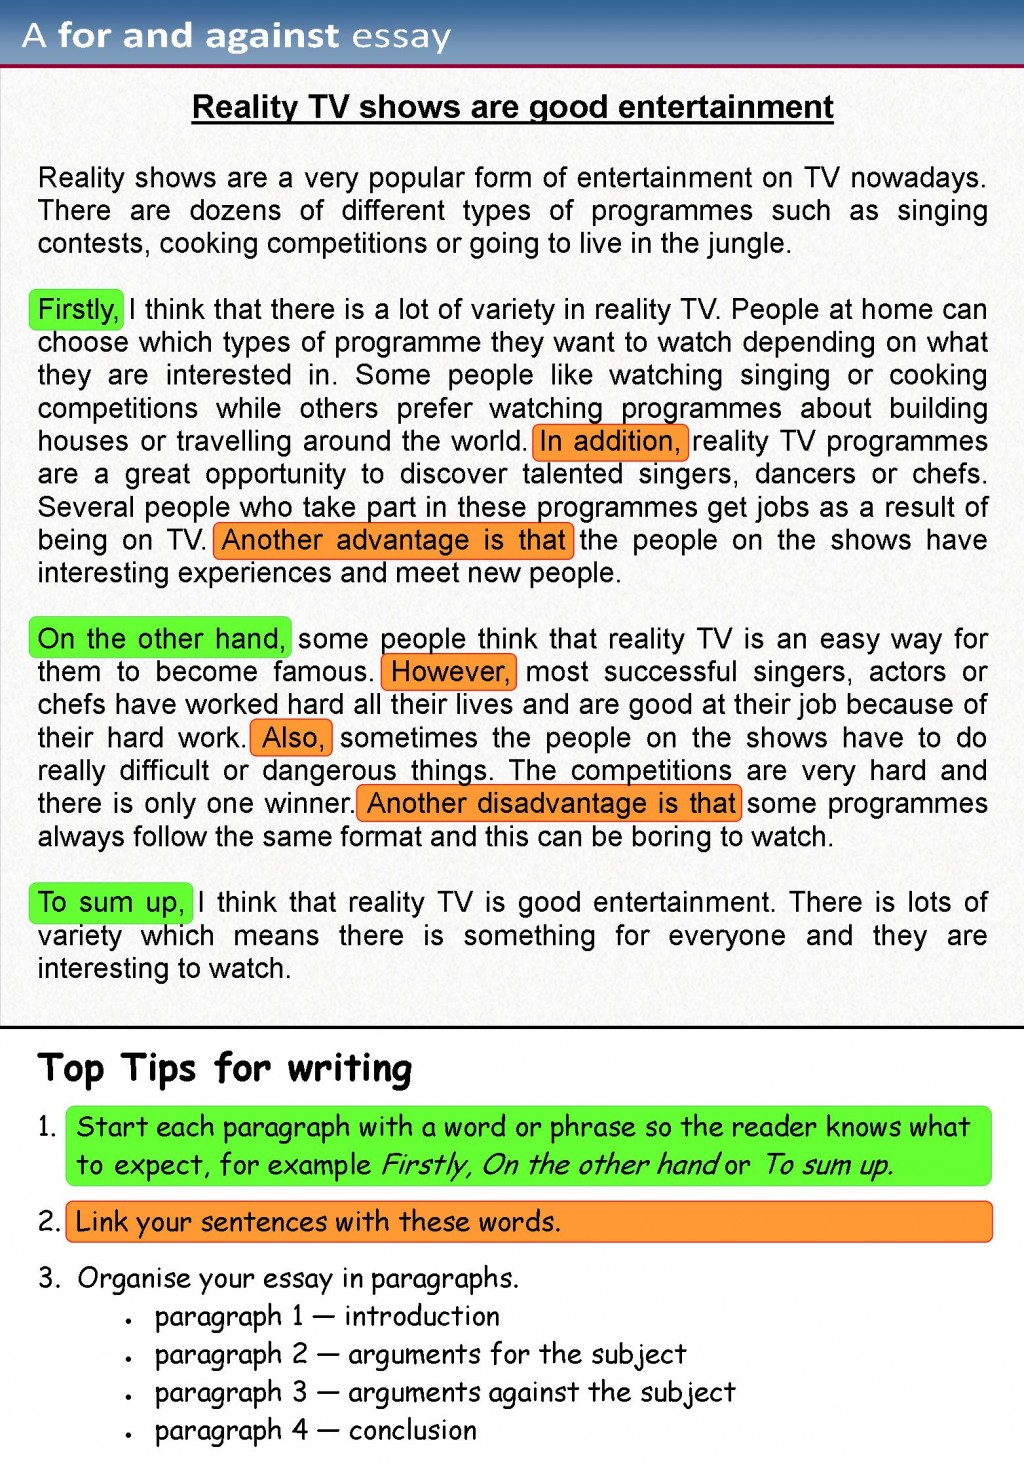 005 Day Without Tv Essay Example For Against 1 Outstanding A Large